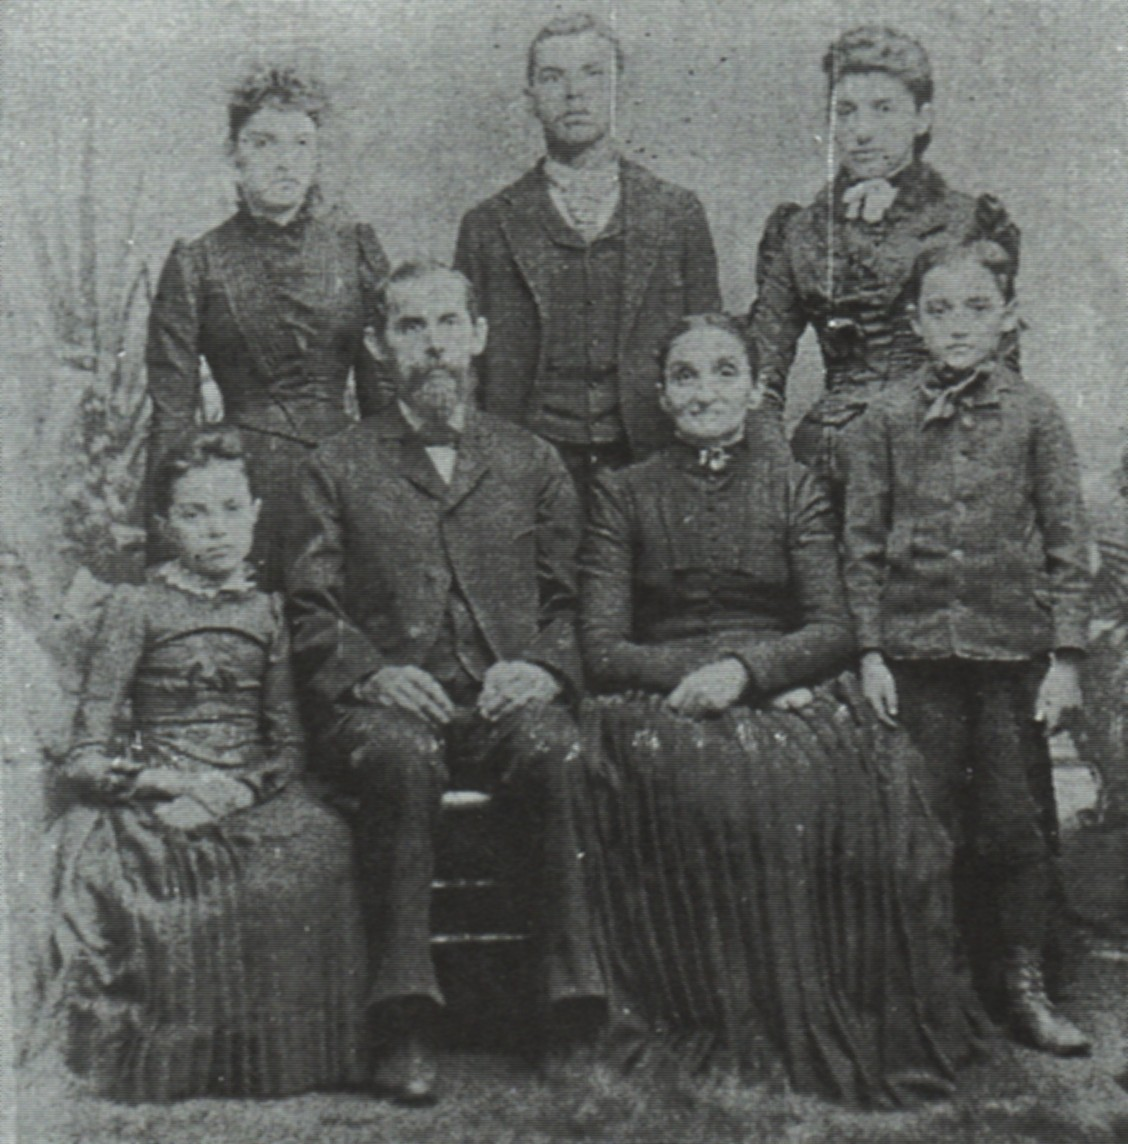 Civil War Blog 187 What Was The Middle Name Of John G Keihner